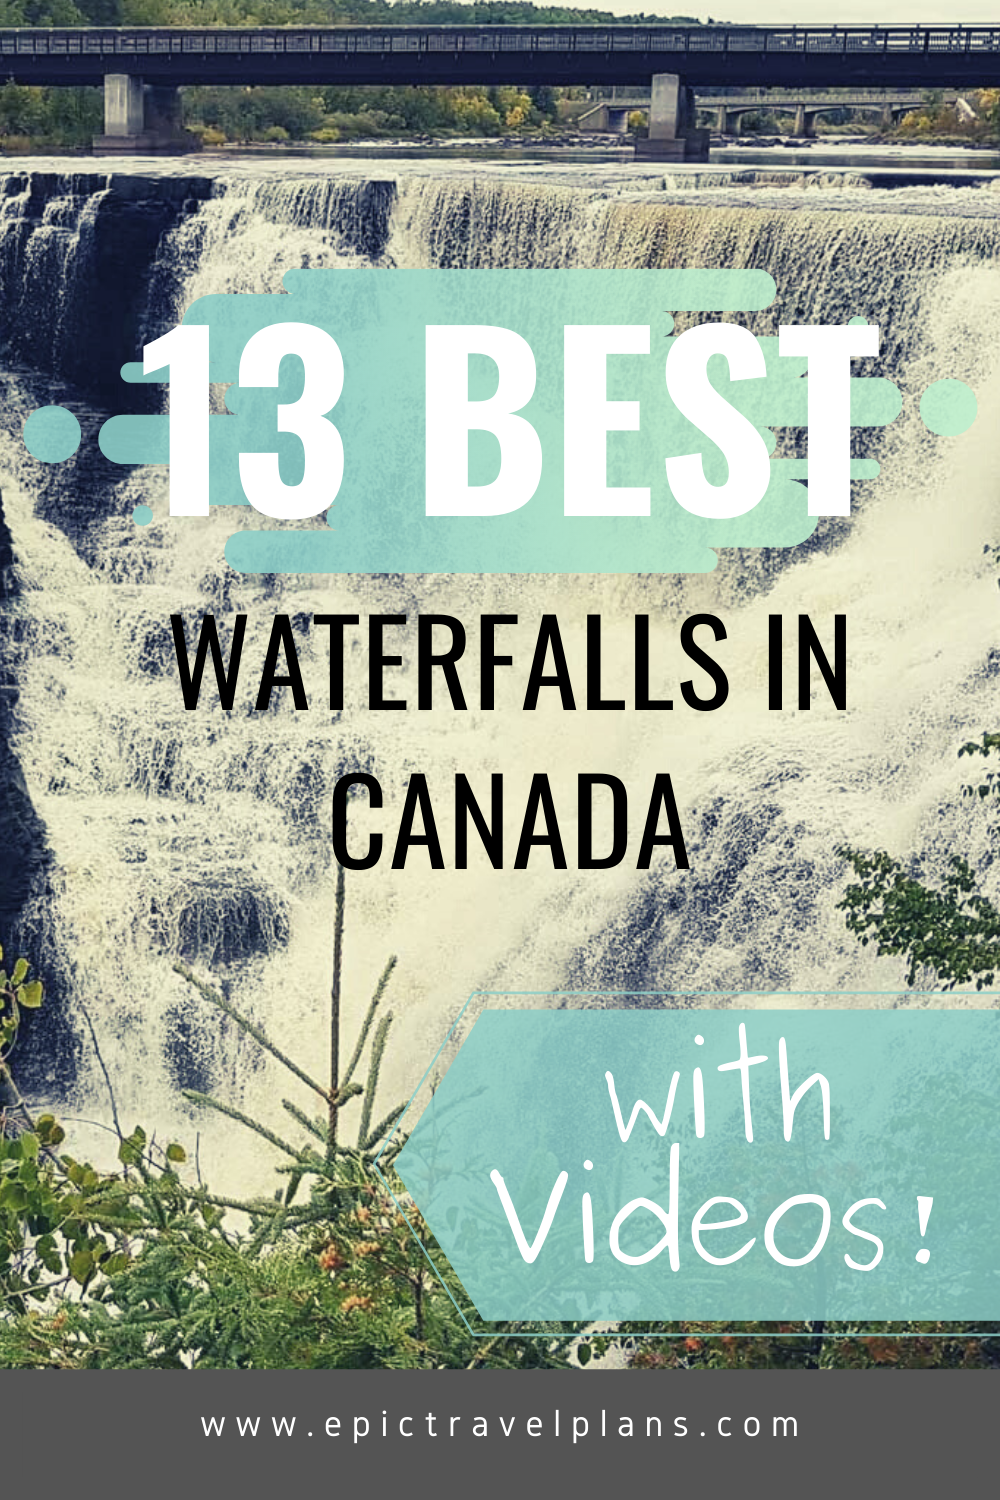 13 BEST waterfalls in Canada, with videos